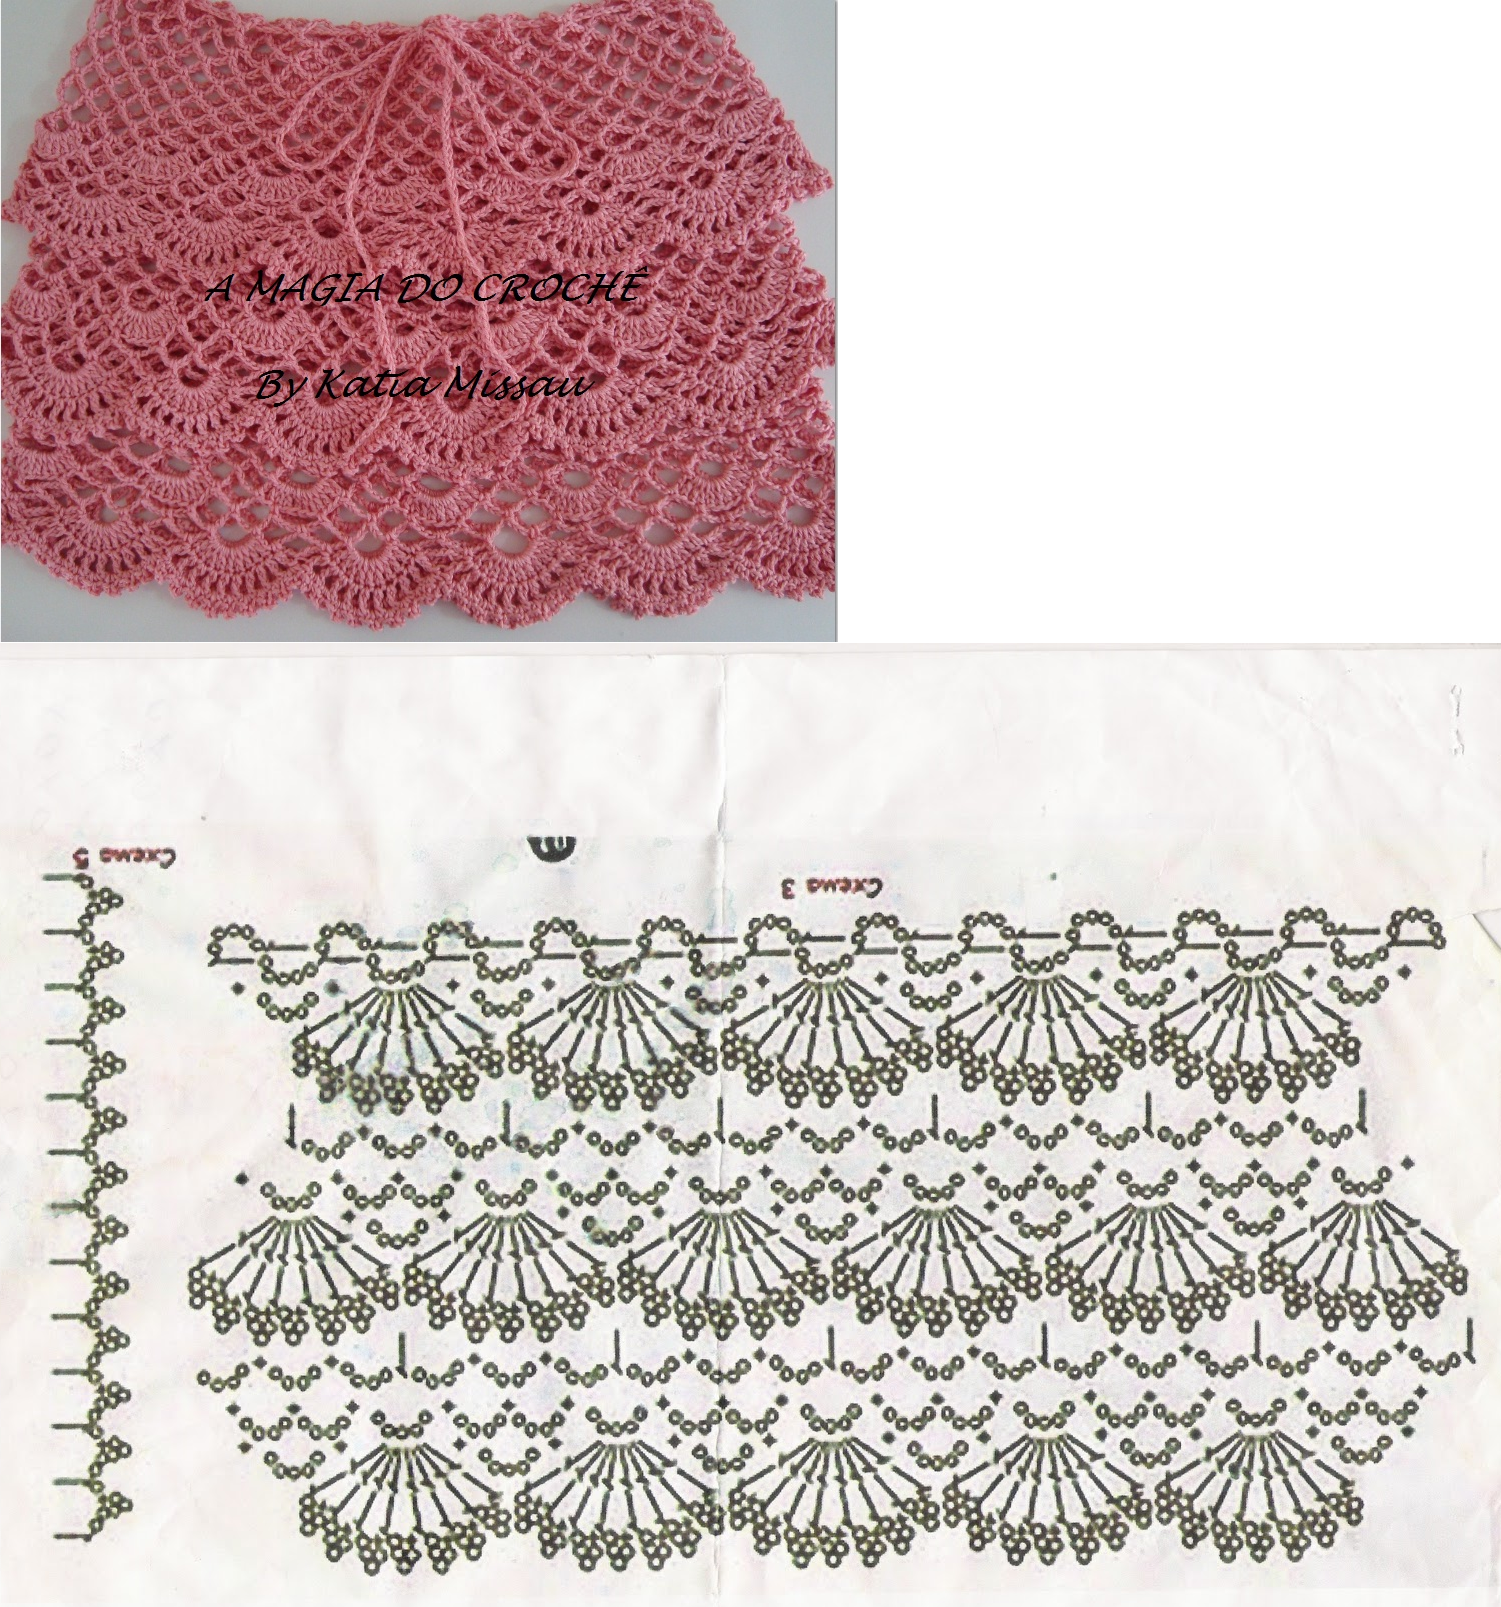 Crochet Stitches Pinterest : Crochet Stitches